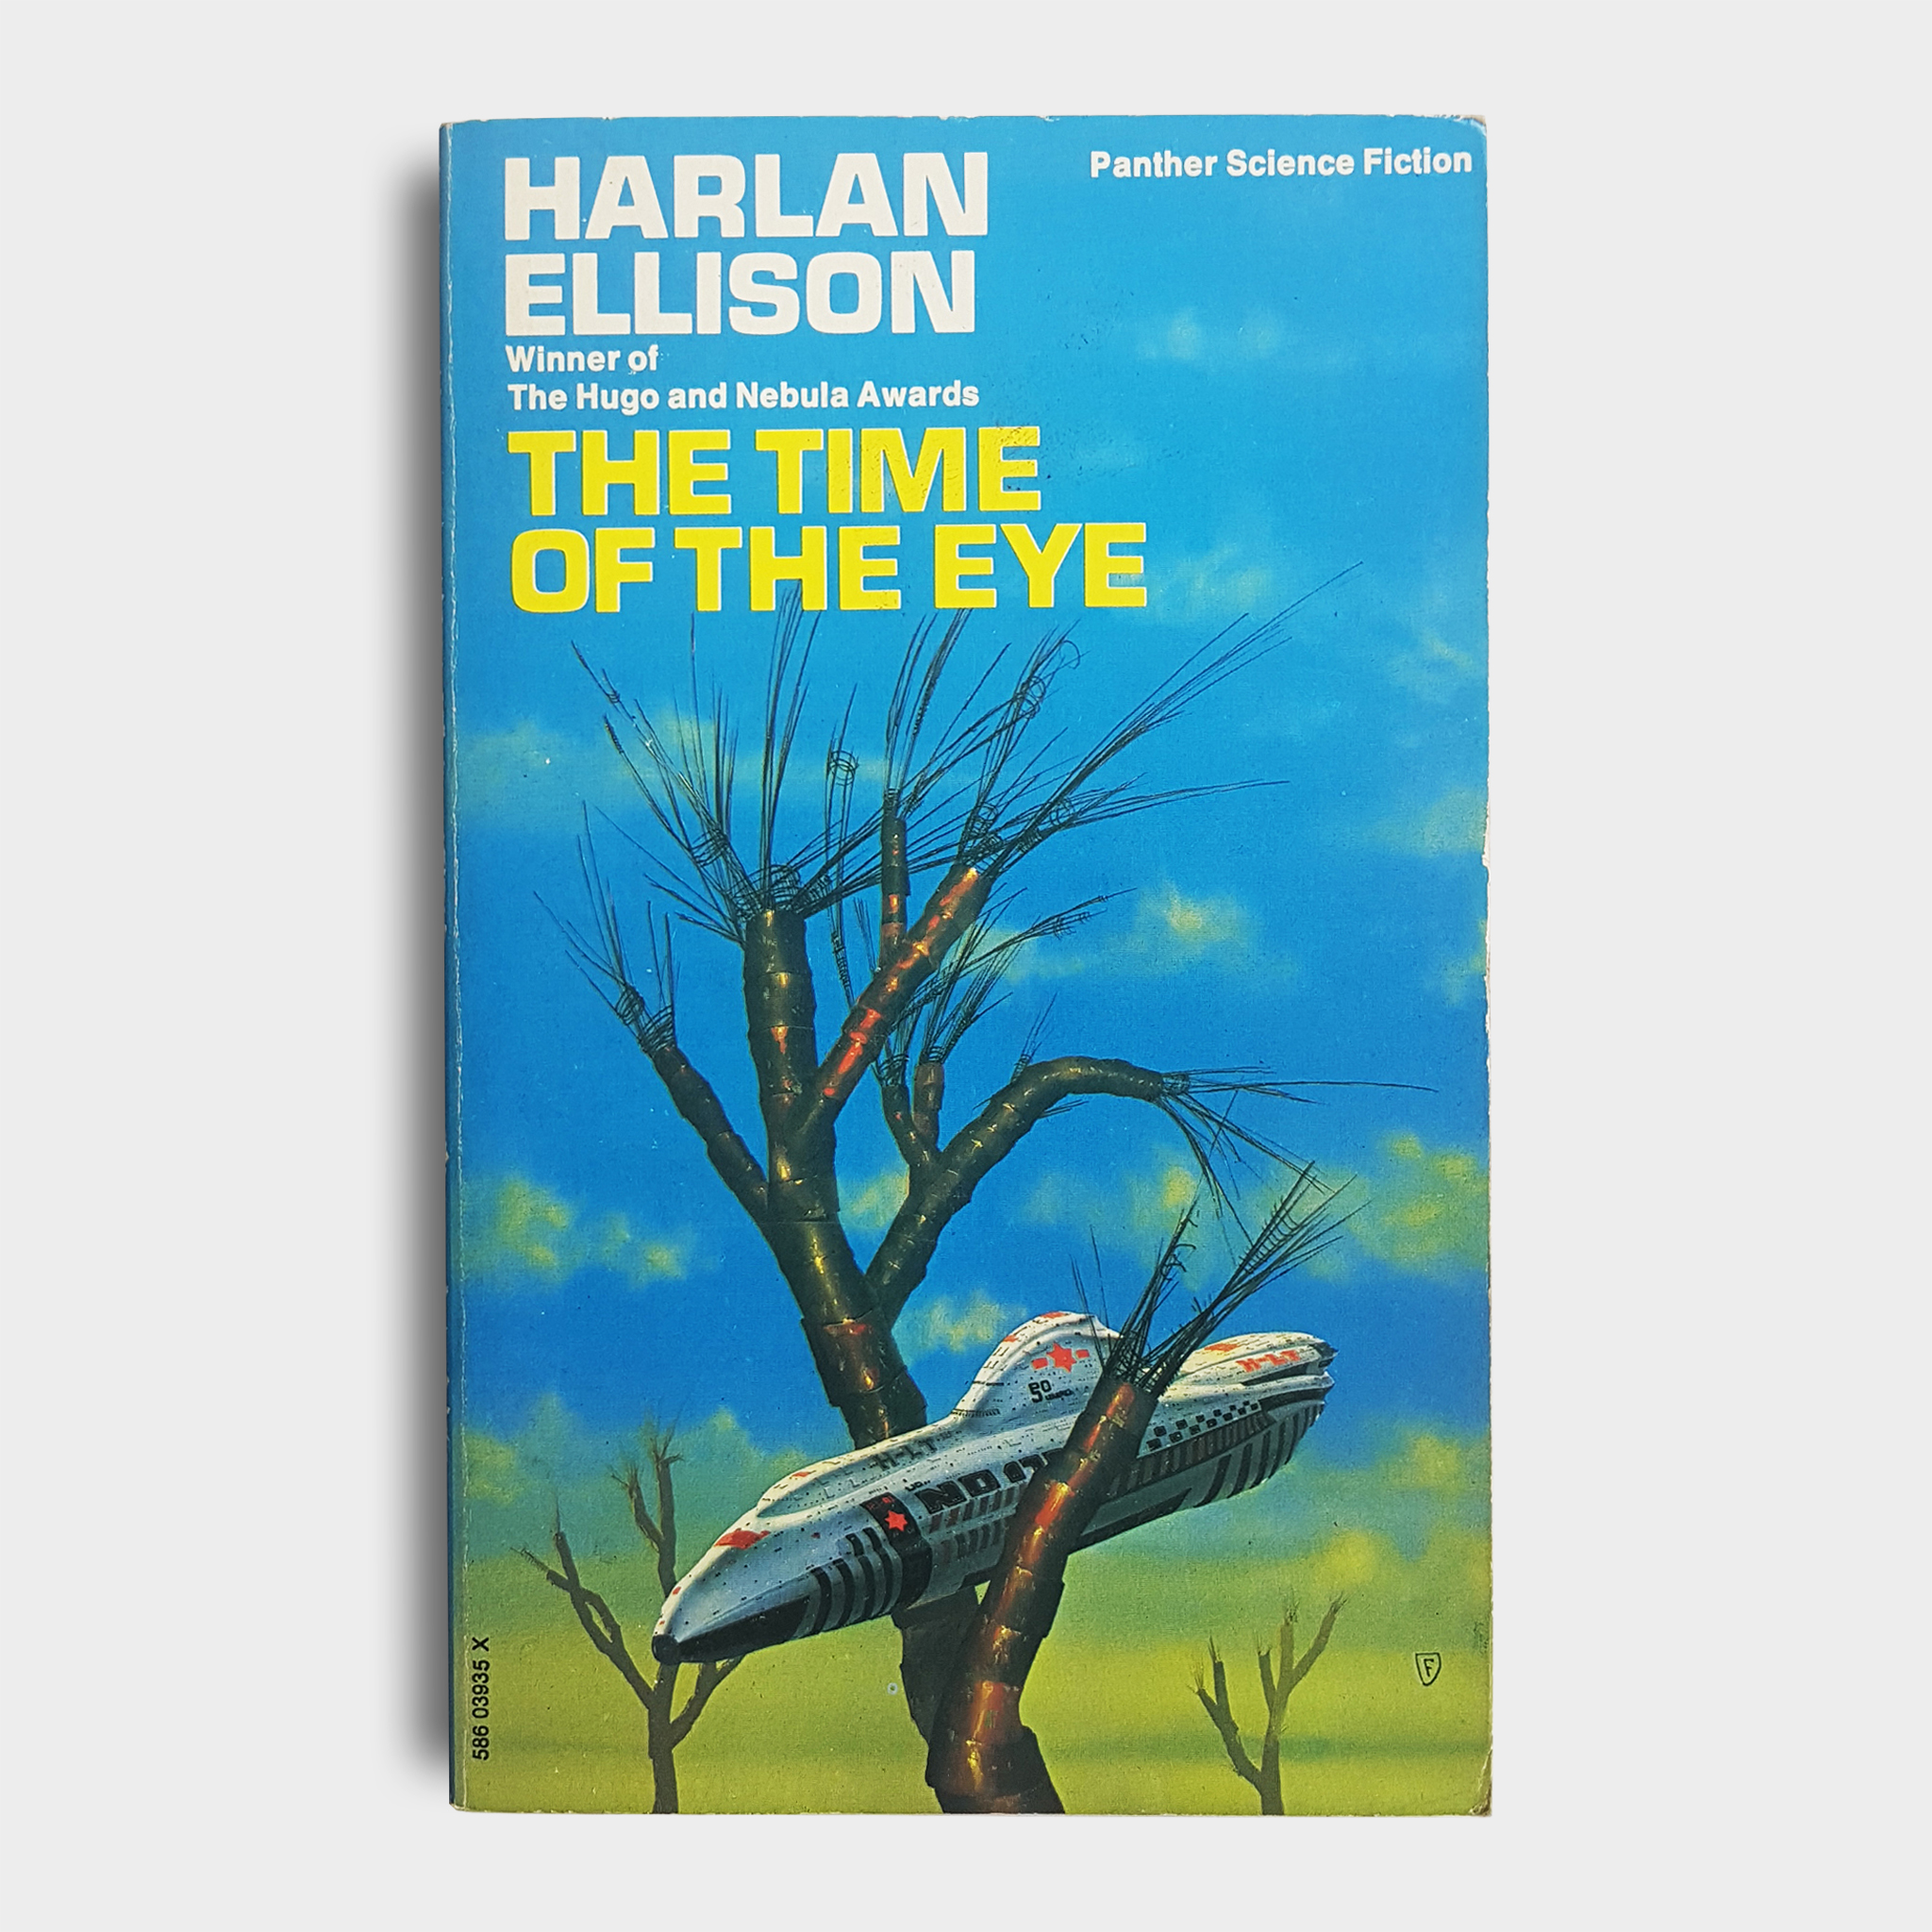 Harlan Ellison - The Time of the Eye